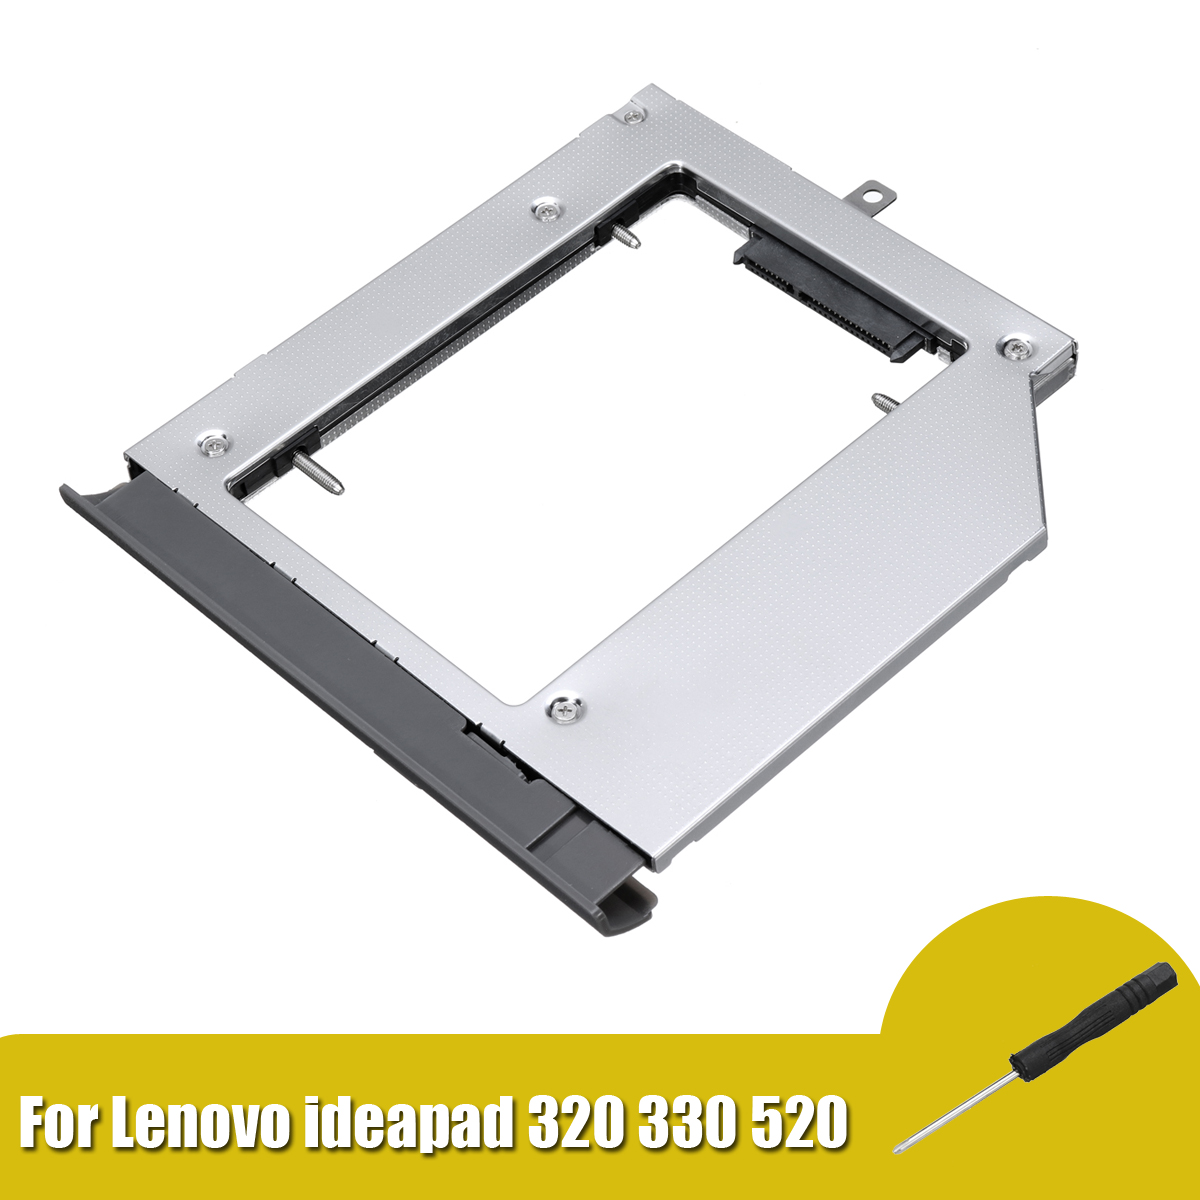 ShirLin Notebook Hard Disk Drive 2nd HDD SSD Hard Drive Caddy For Lenovo ideapad 320 330 520 with ScrewdriverShirLin Notebook Hard Disk Drive 2nd HDD SSD Hard Drive Caddy For Lenovo ideapad 320 330 520 with Screwdriver